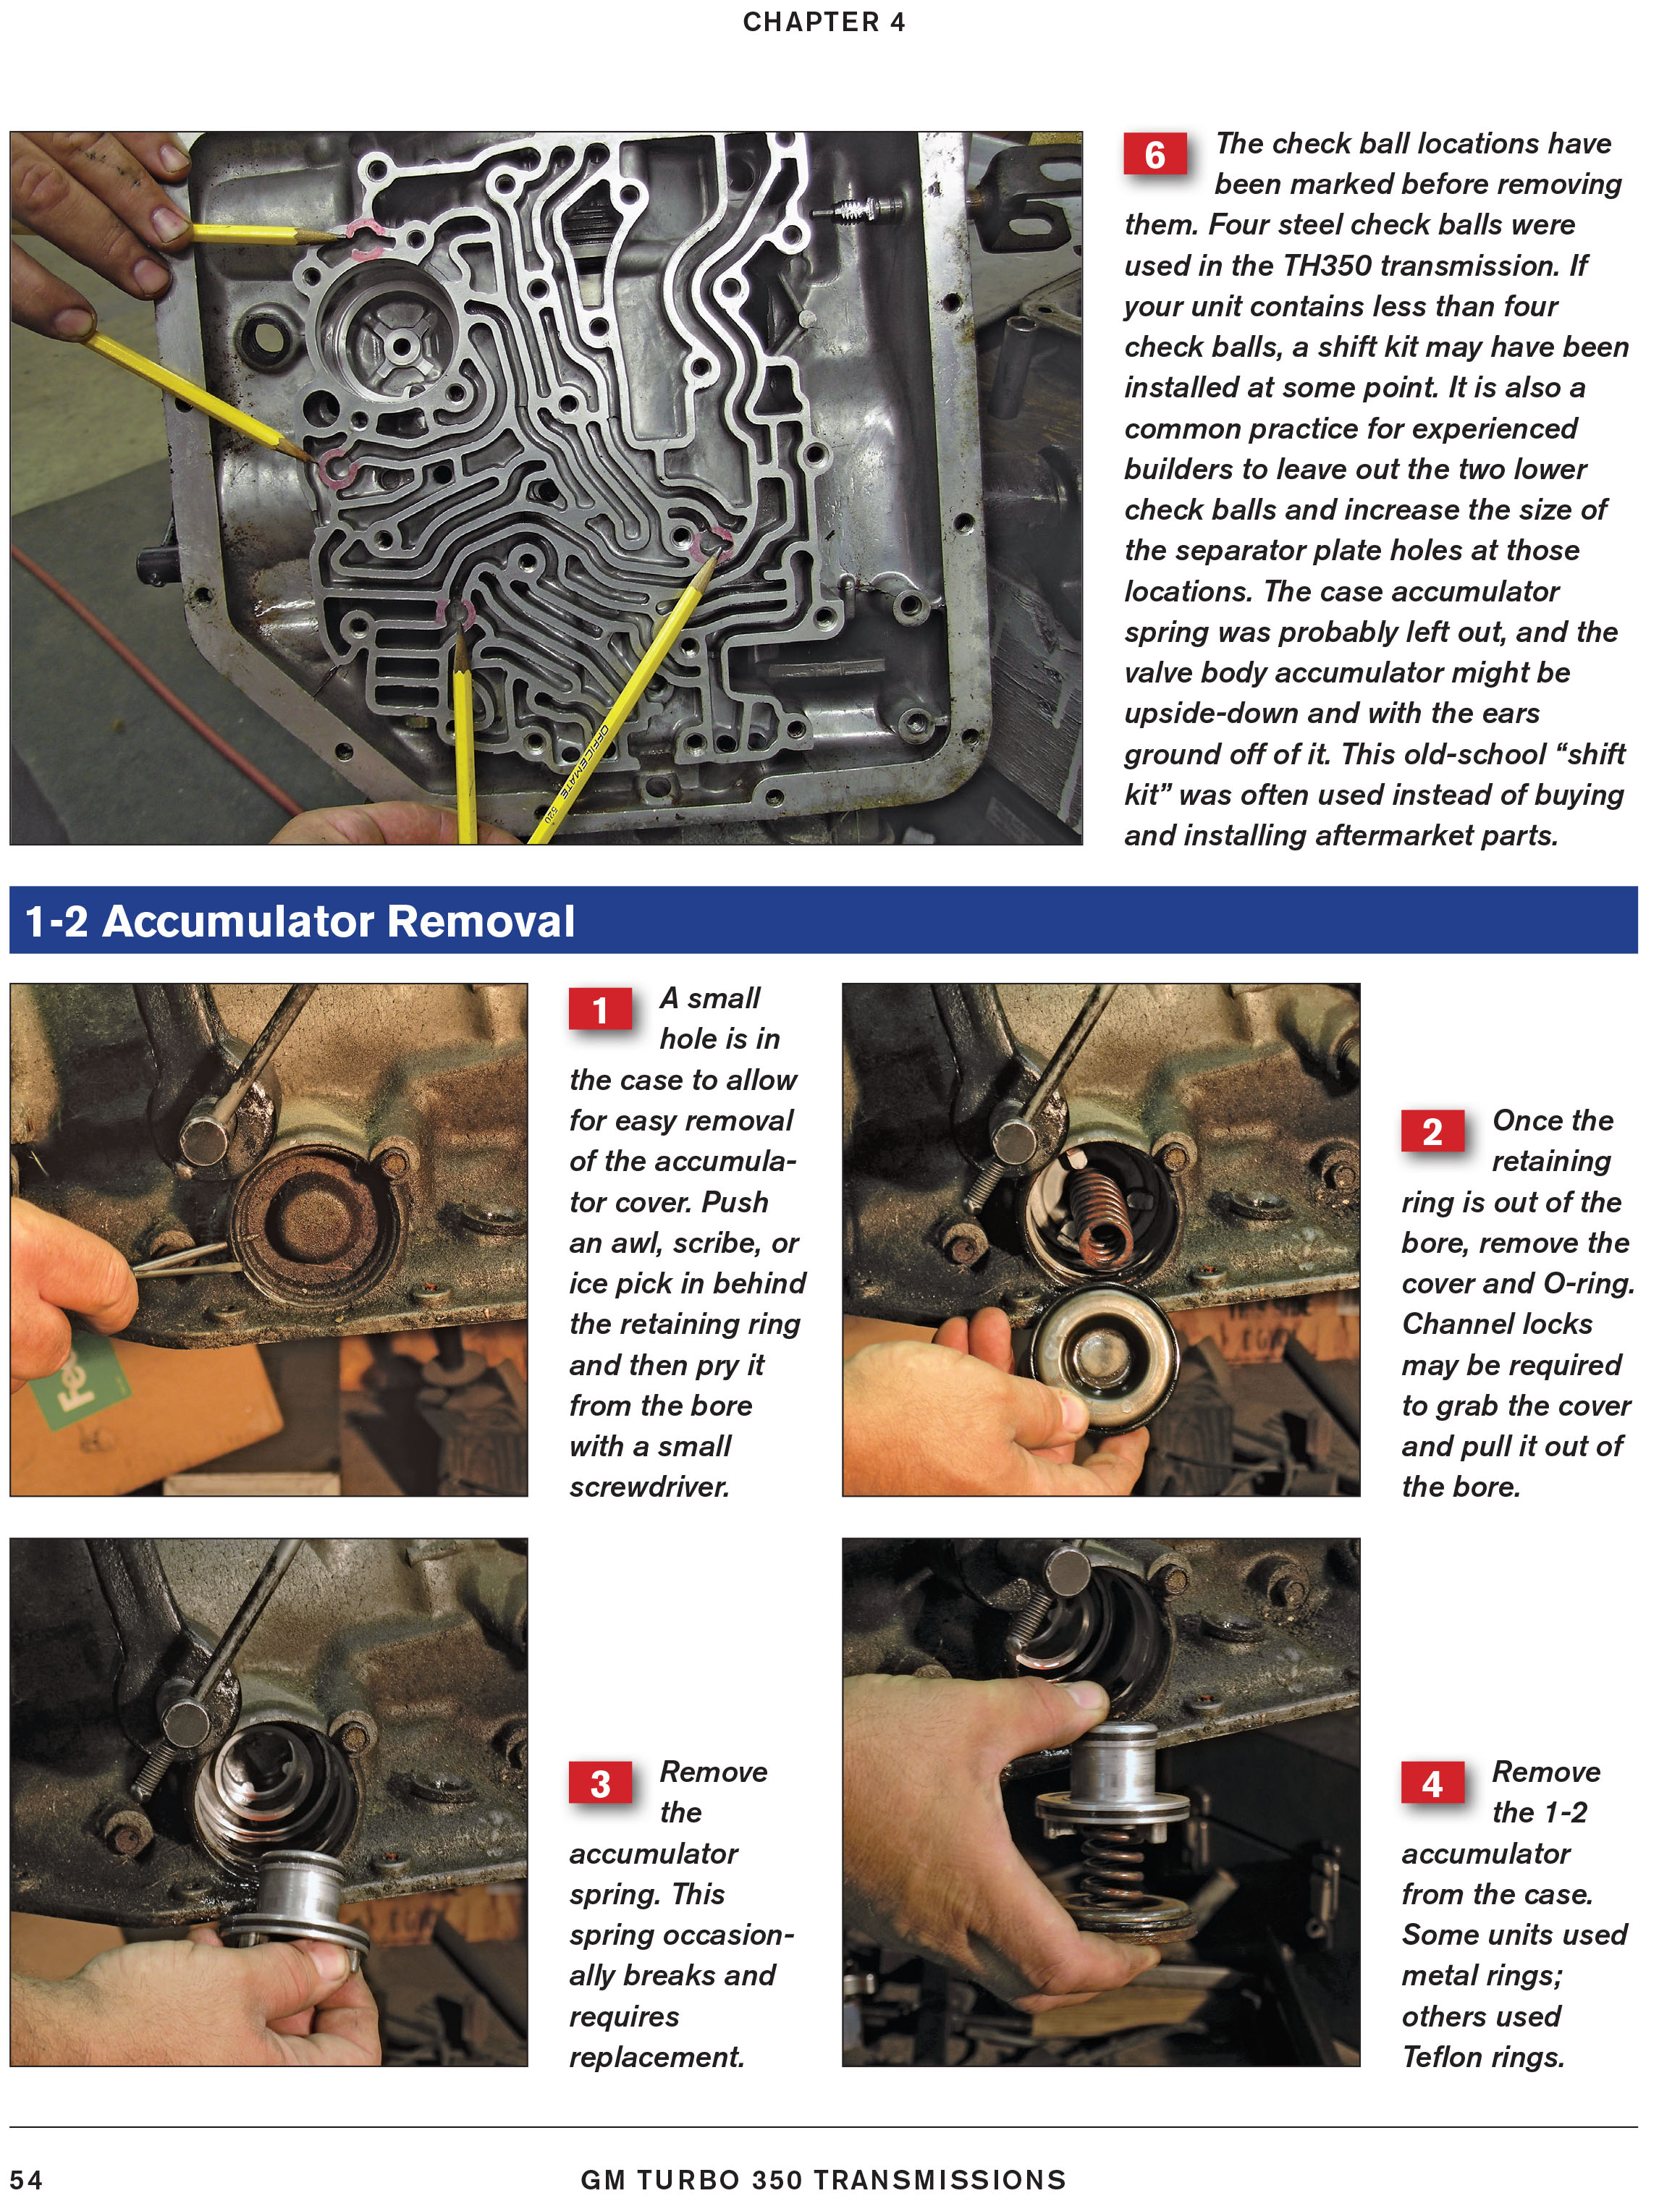 were older honda automatic transmissions designed to be manual